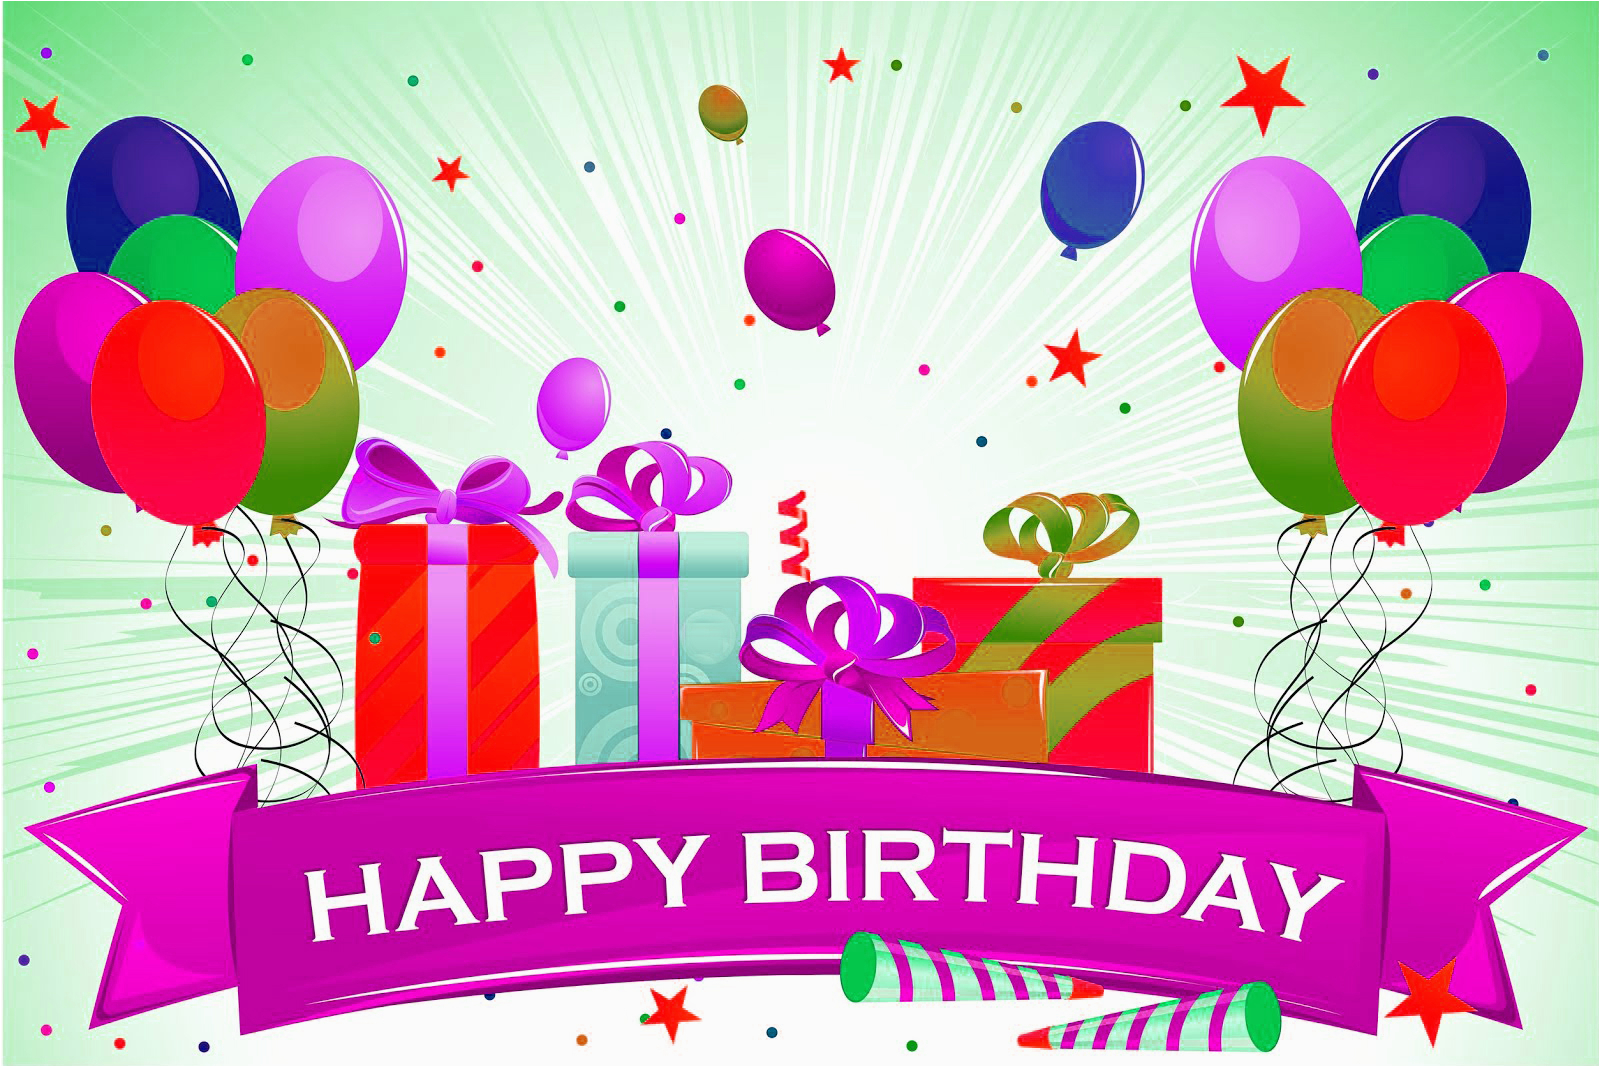 Happy Birthday Cards Online Free To Make Images And Best Wishes For You